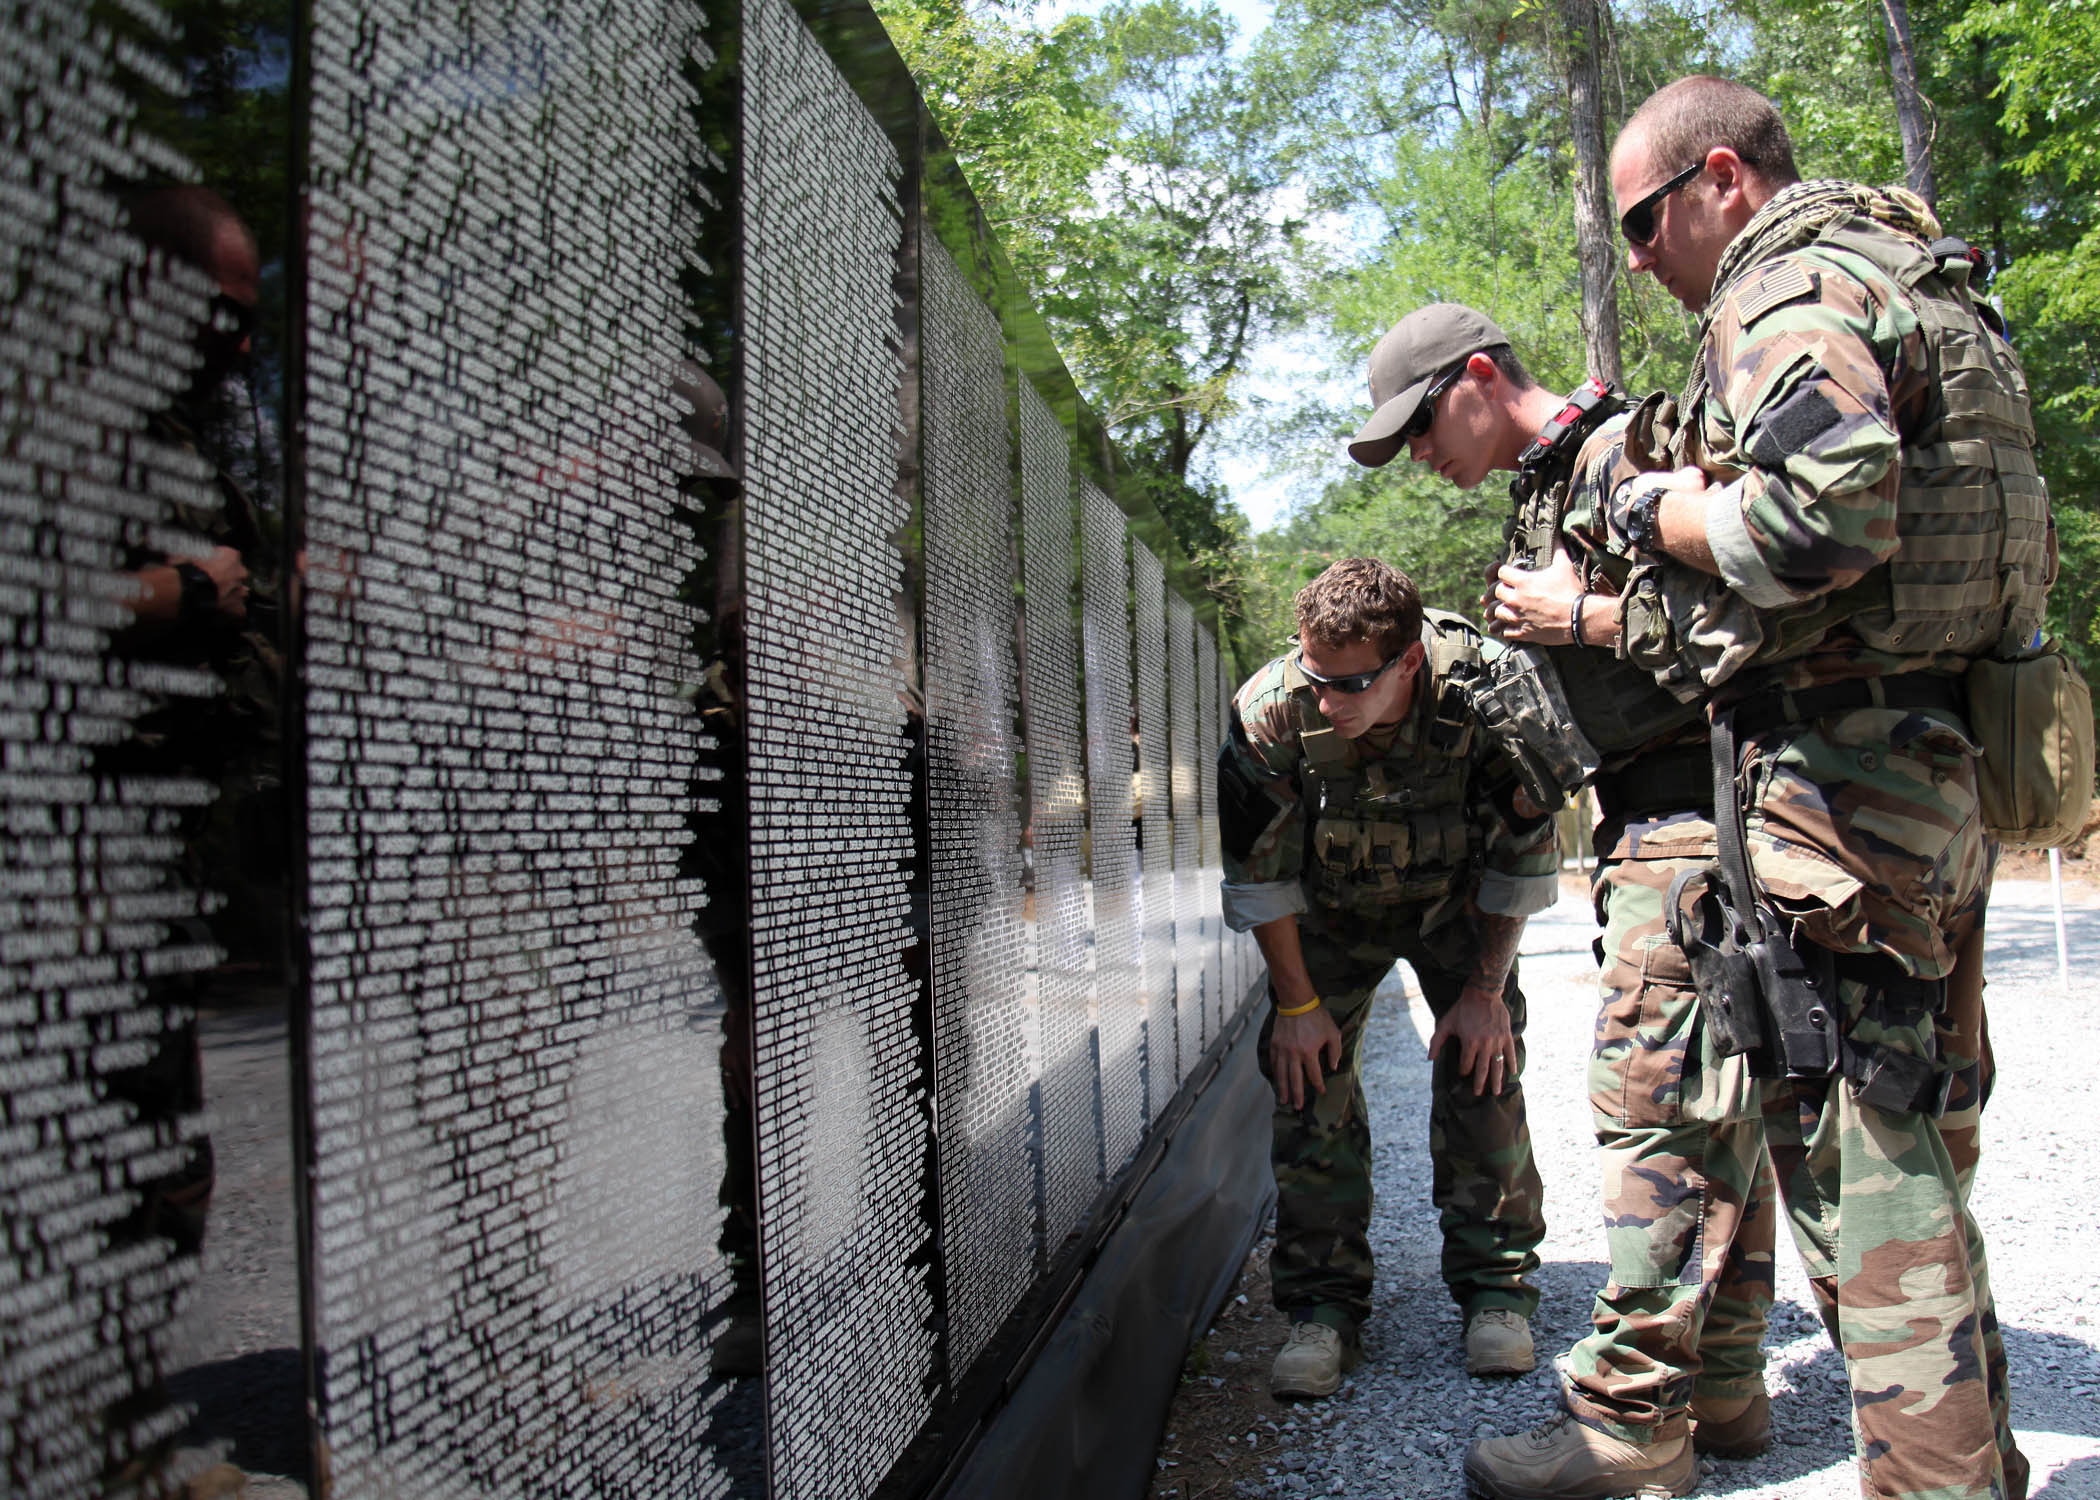 Vietnam Wall : Vietnam Memorial Wall Names Related Keywords & Suggestions - Vietnam ...